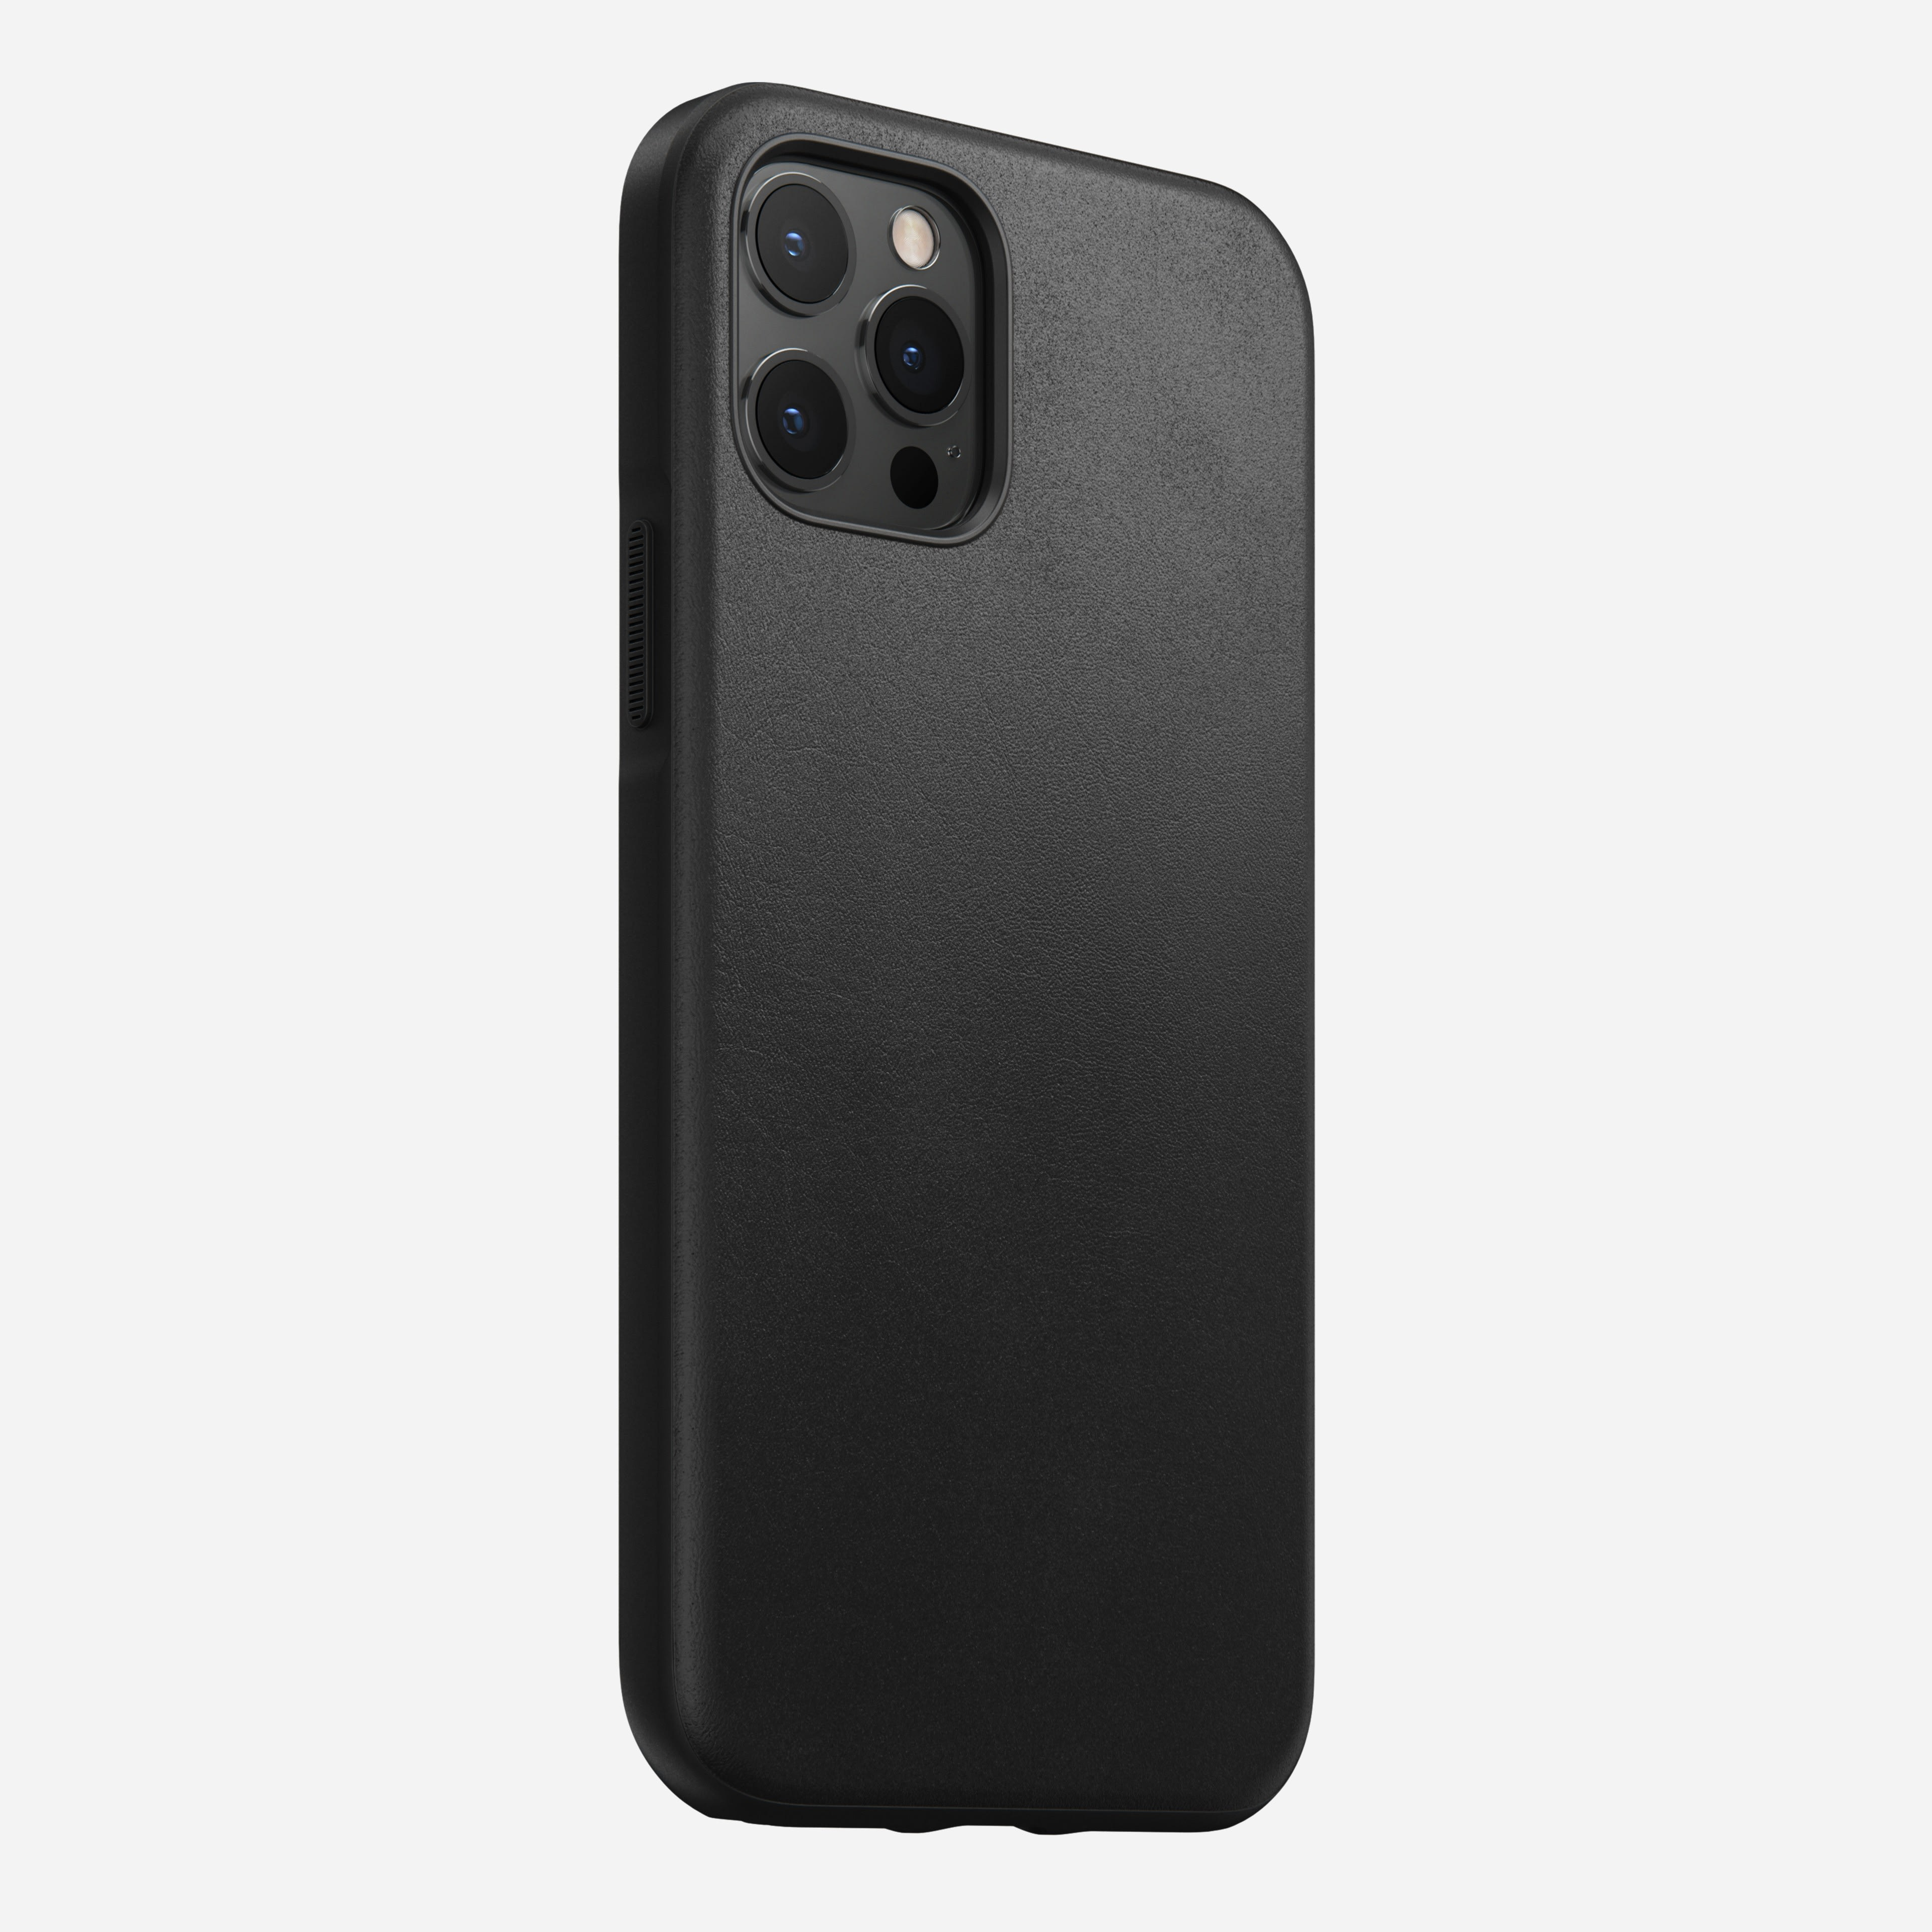 Rugged case horween leather black iphone 12 pro